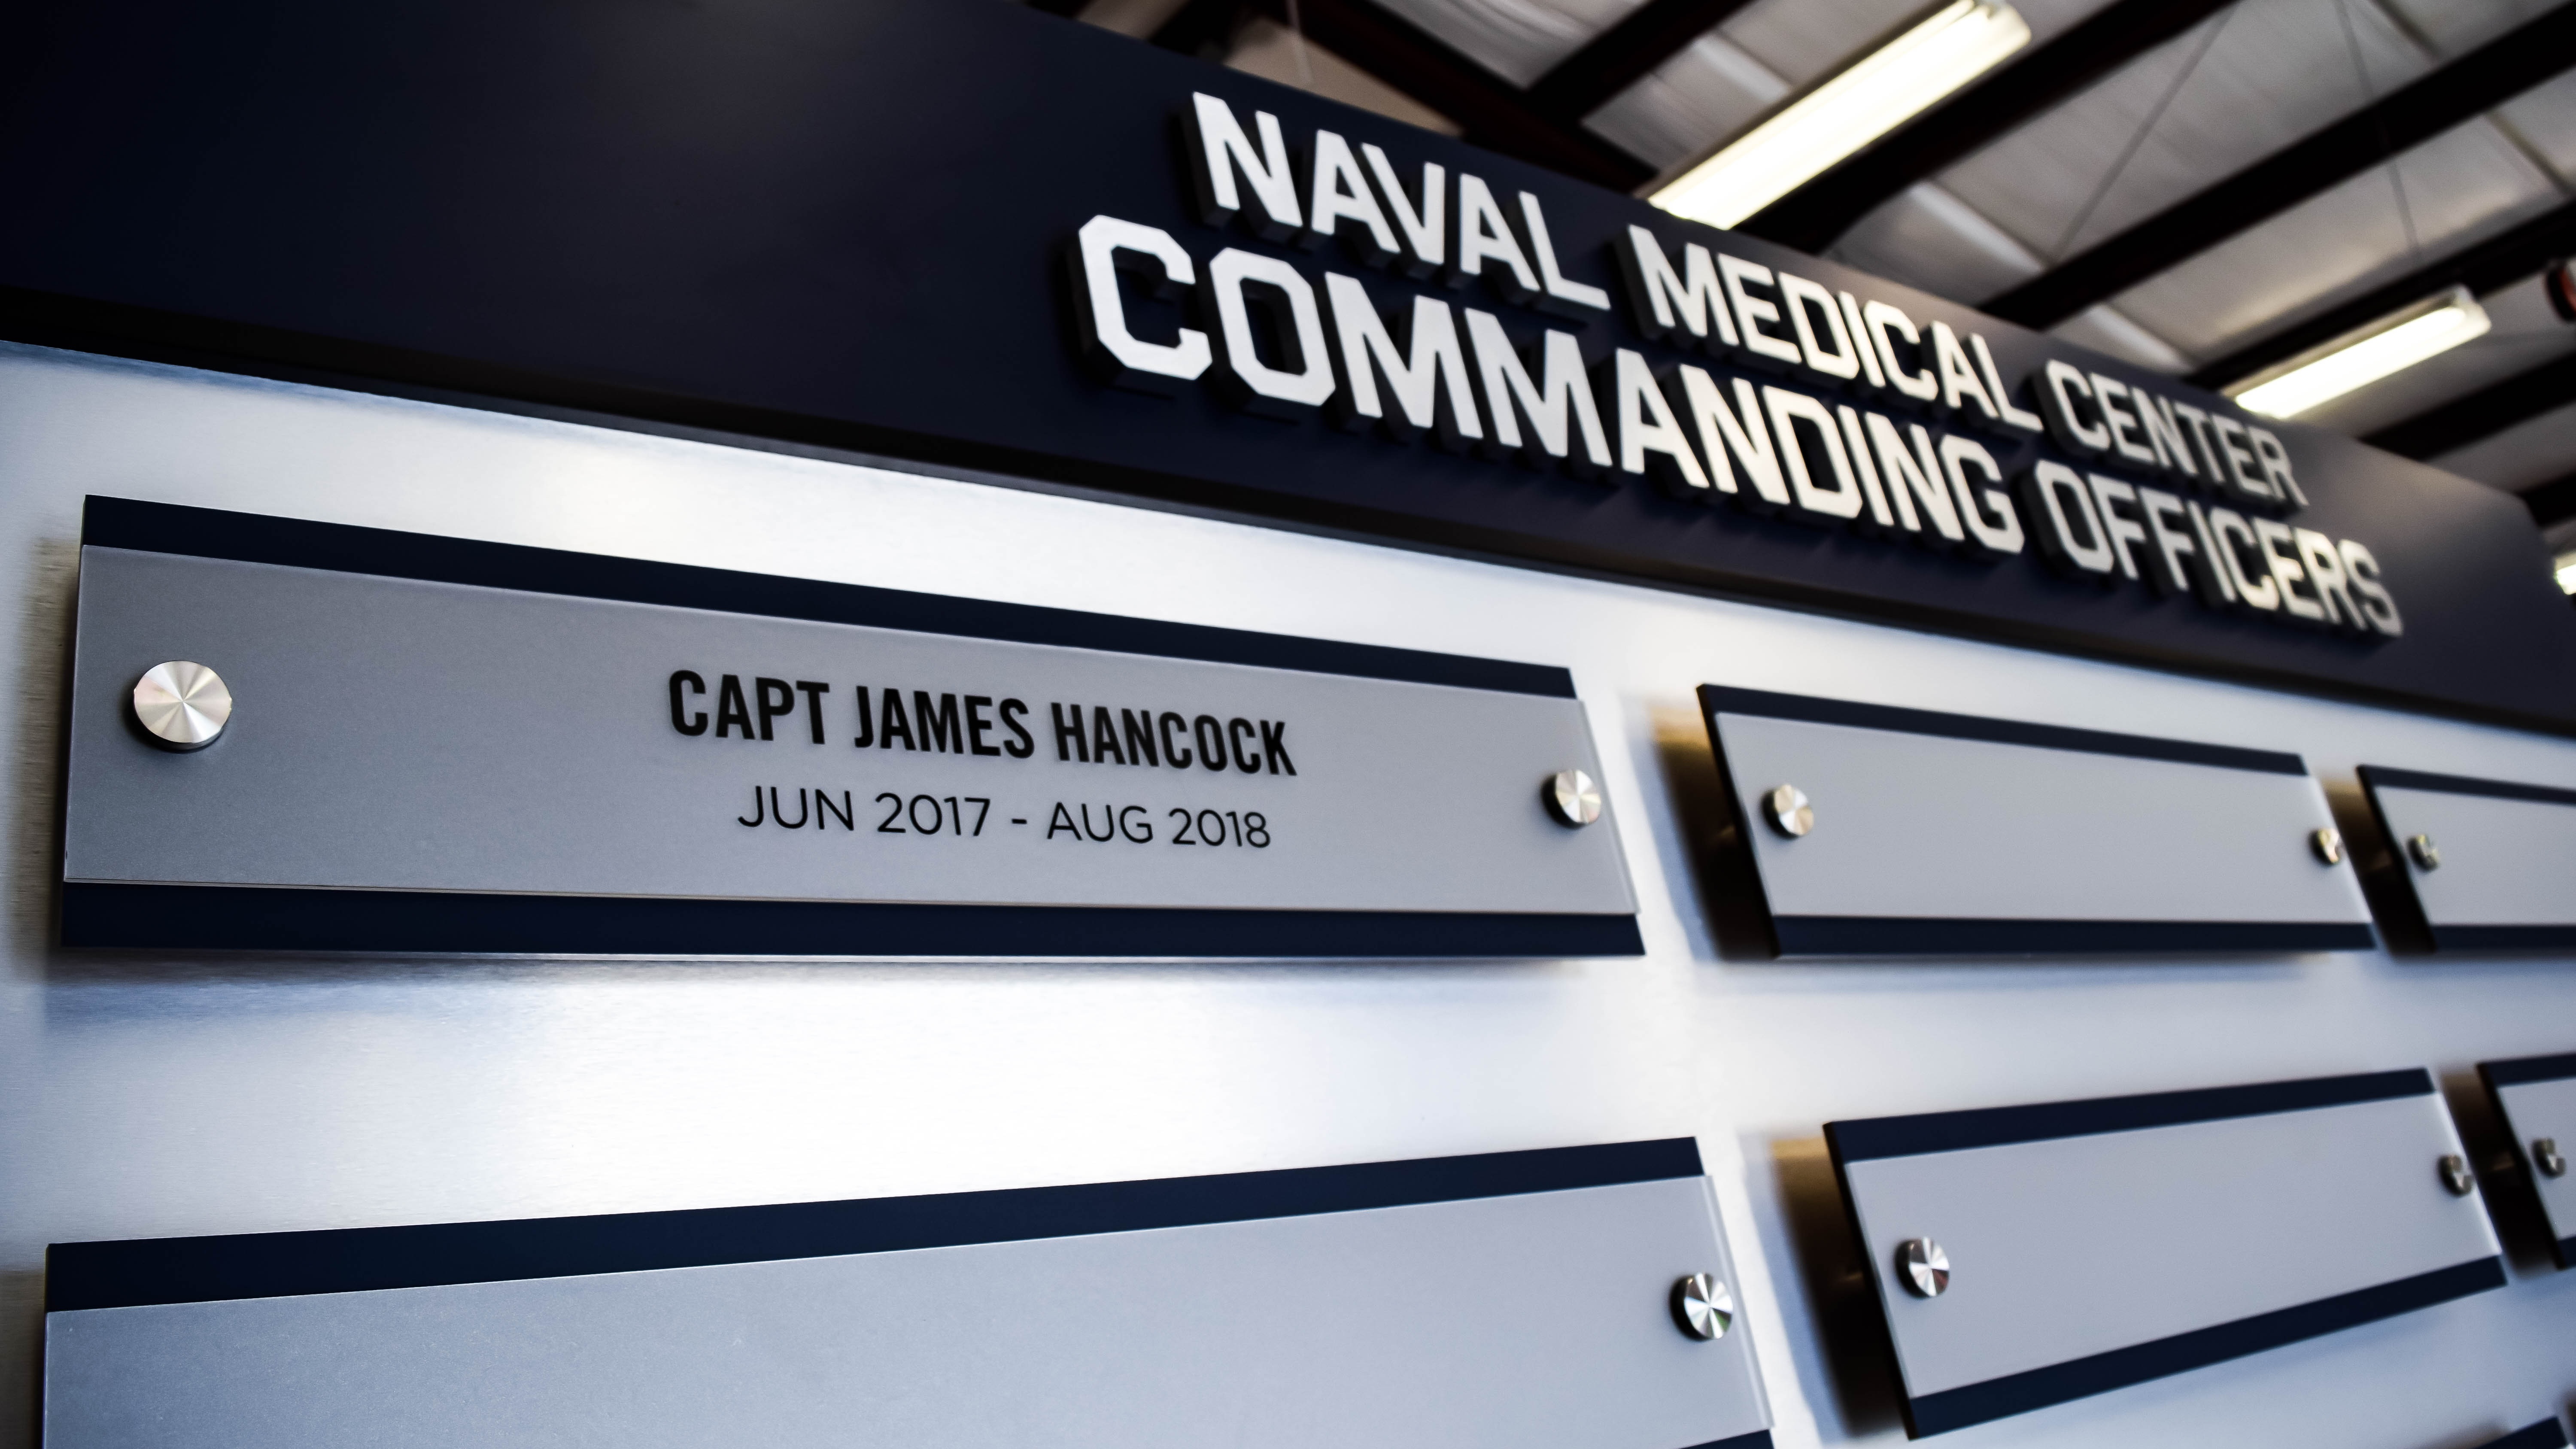 Custom recognition display for Navy Officers by signgeek.